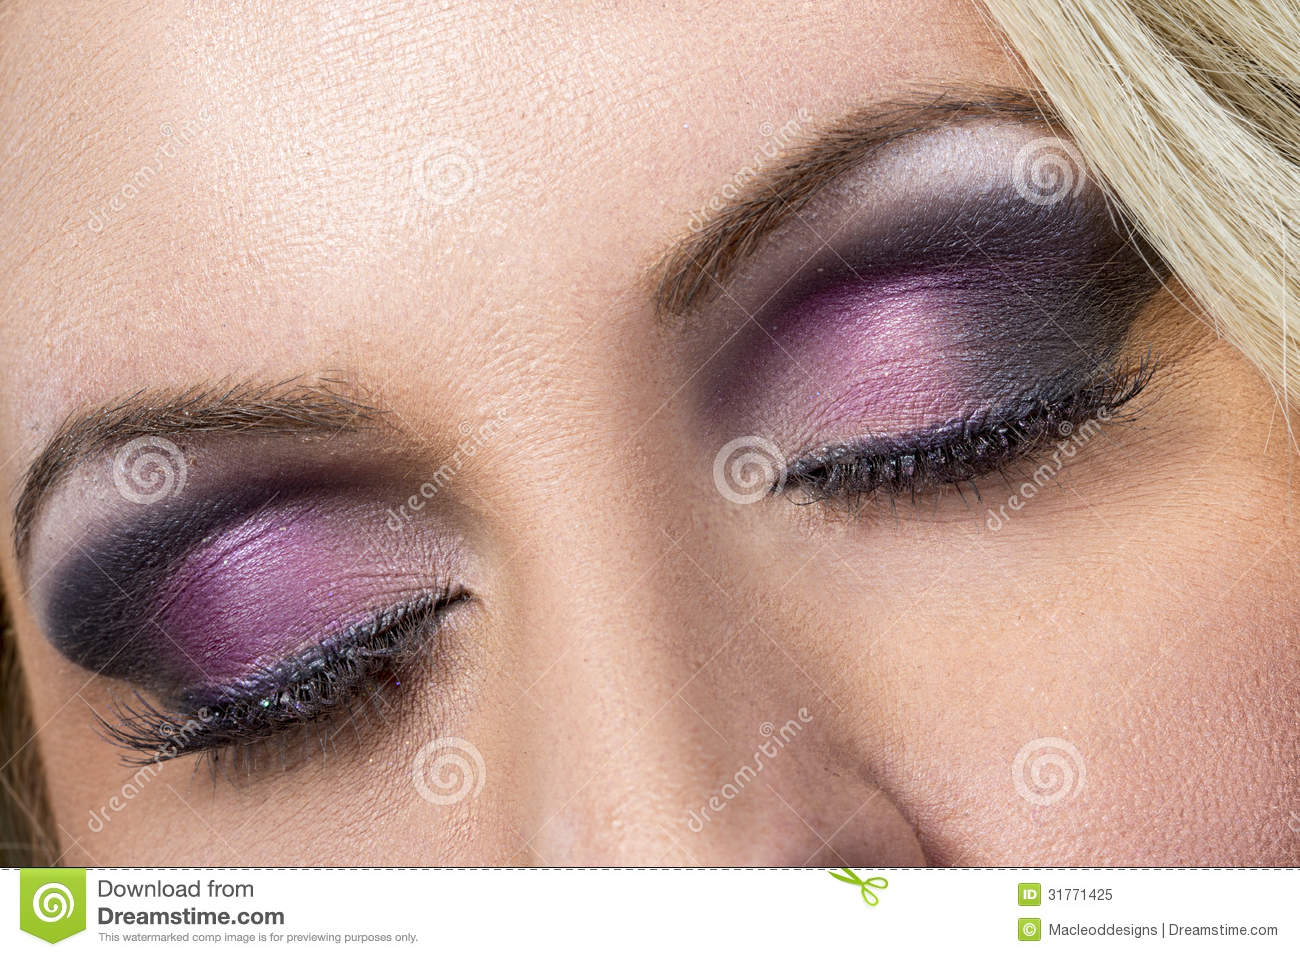 Makeup eye purple close up photo pictures